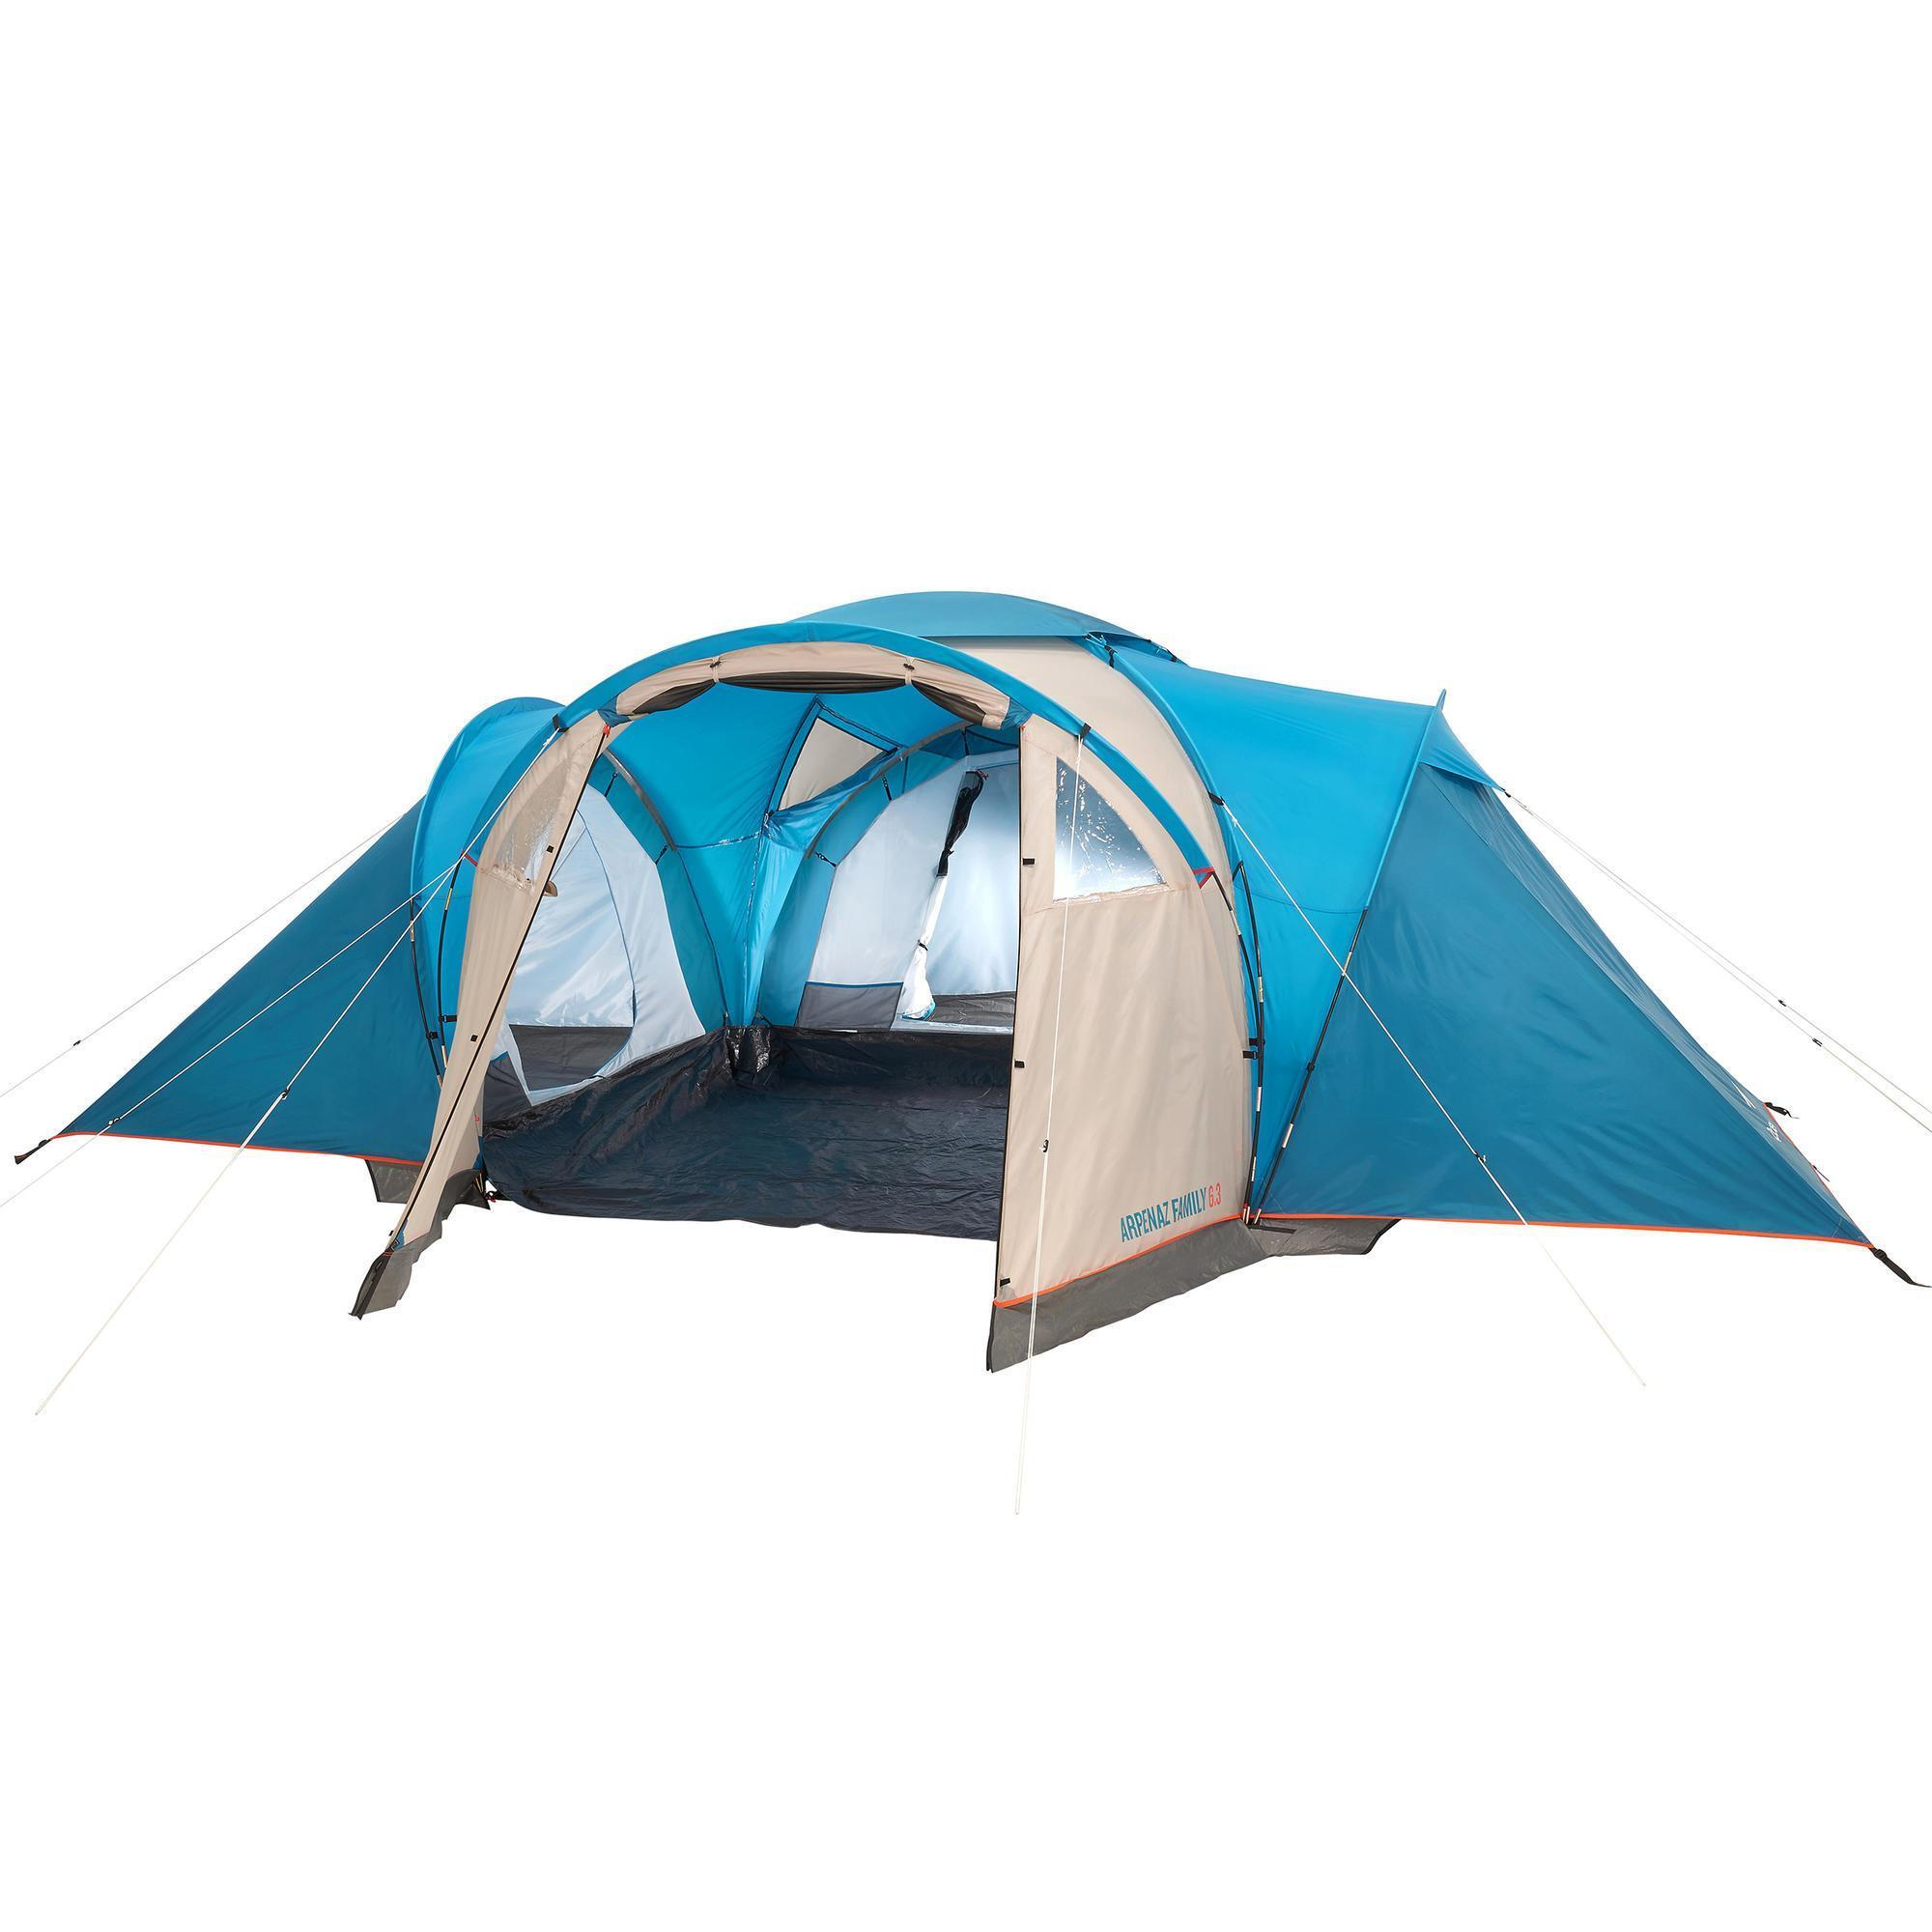 Arpenaz family 6.3  sc 1 st  Quechua & Camping tents for 4 to 8 people | Quechua